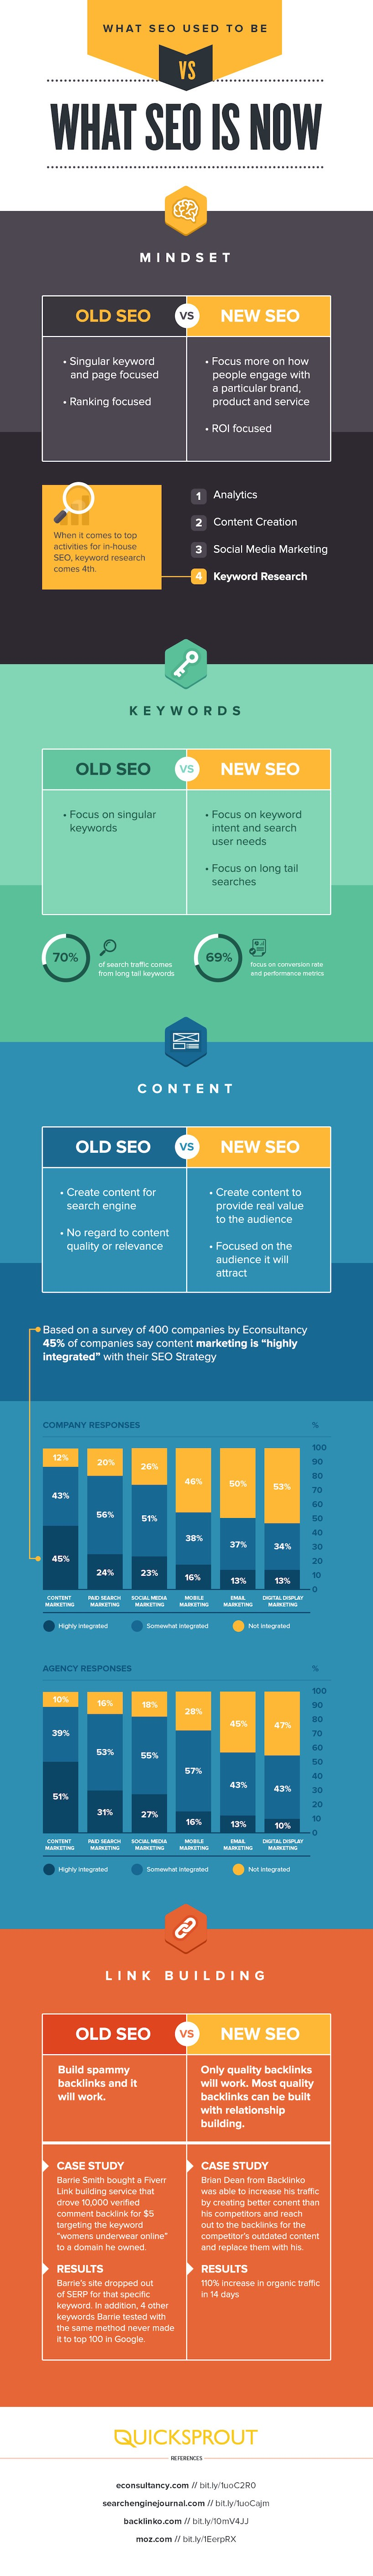 SEO Infographic: What SEO Used To Be Versus What SEO Is Now